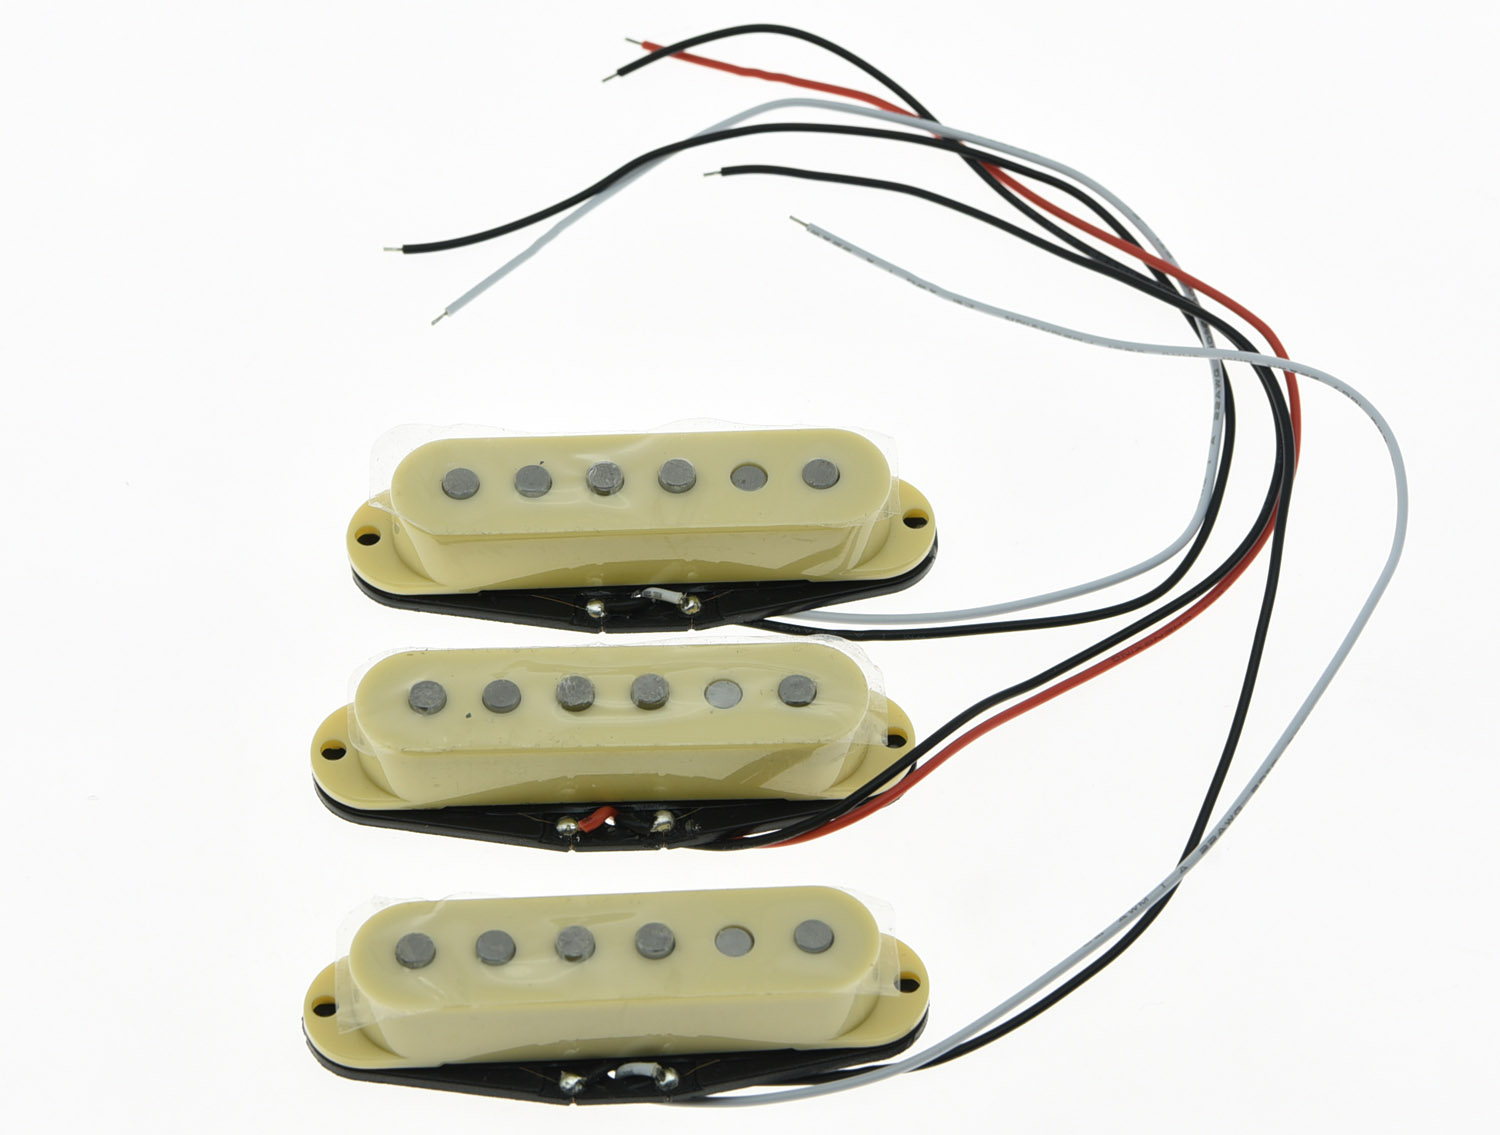 KAISH 3x Cream Alnico 5 Single Coil Pickups ST Strat SSS Pickup Set tsai hotsale vintage voice single coil pickup for stratocaster ceramic bobbin alnico single coil guitar pickup staggered pole